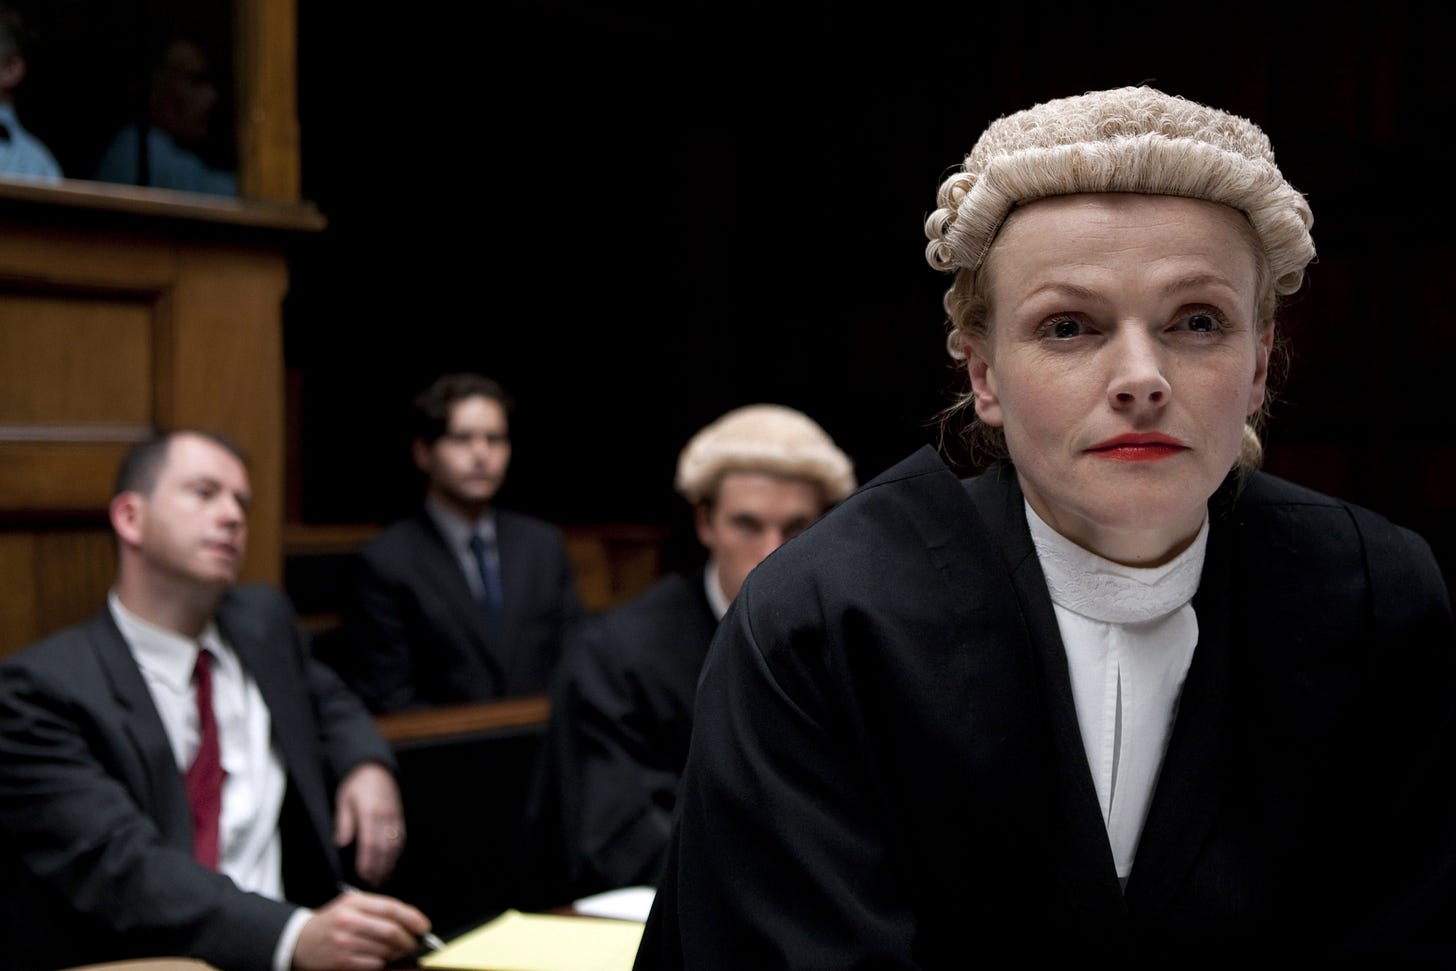 Courtroom Drama Silk Headed to Masterpiece This Summer | Telly Visions